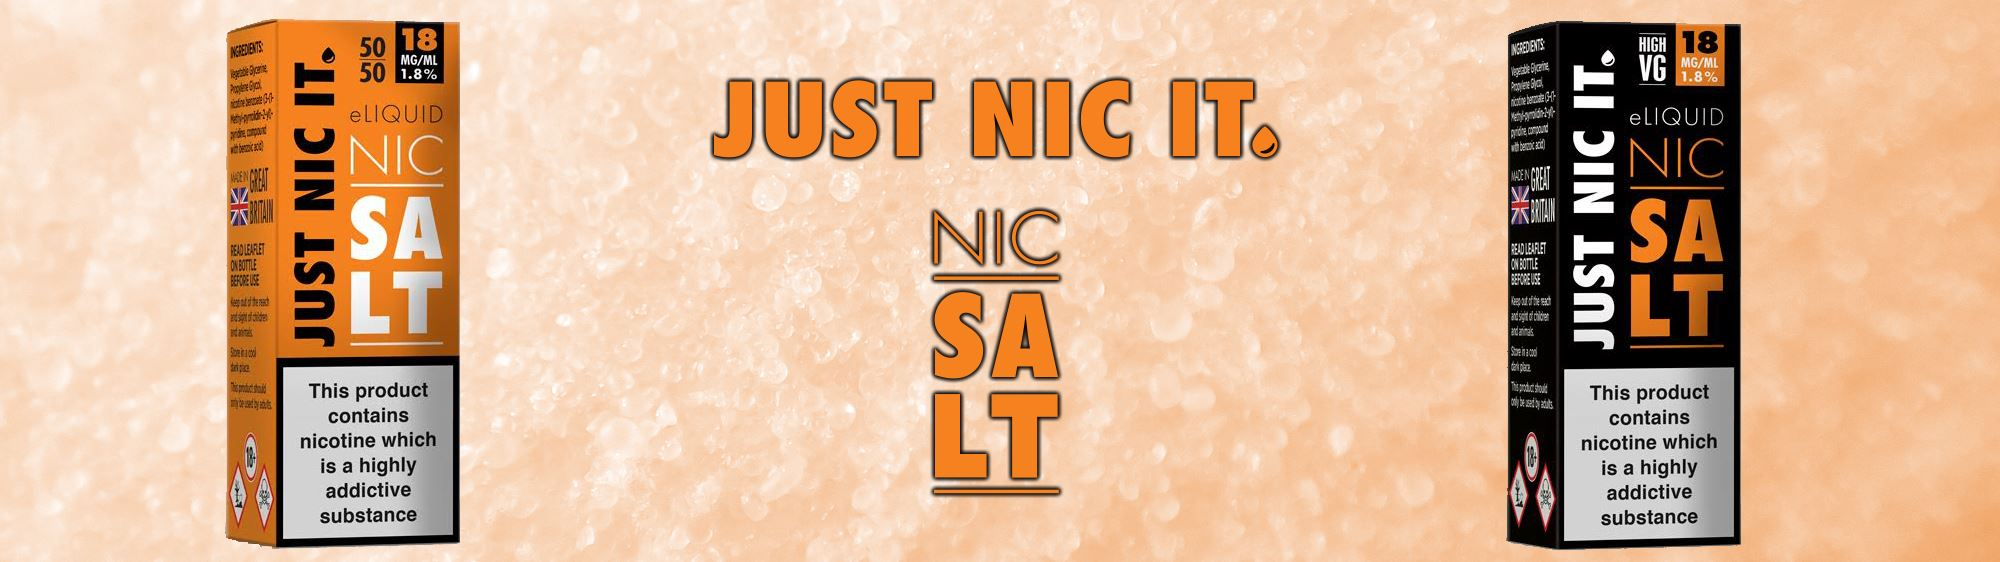 Just Nic It banner nic salt